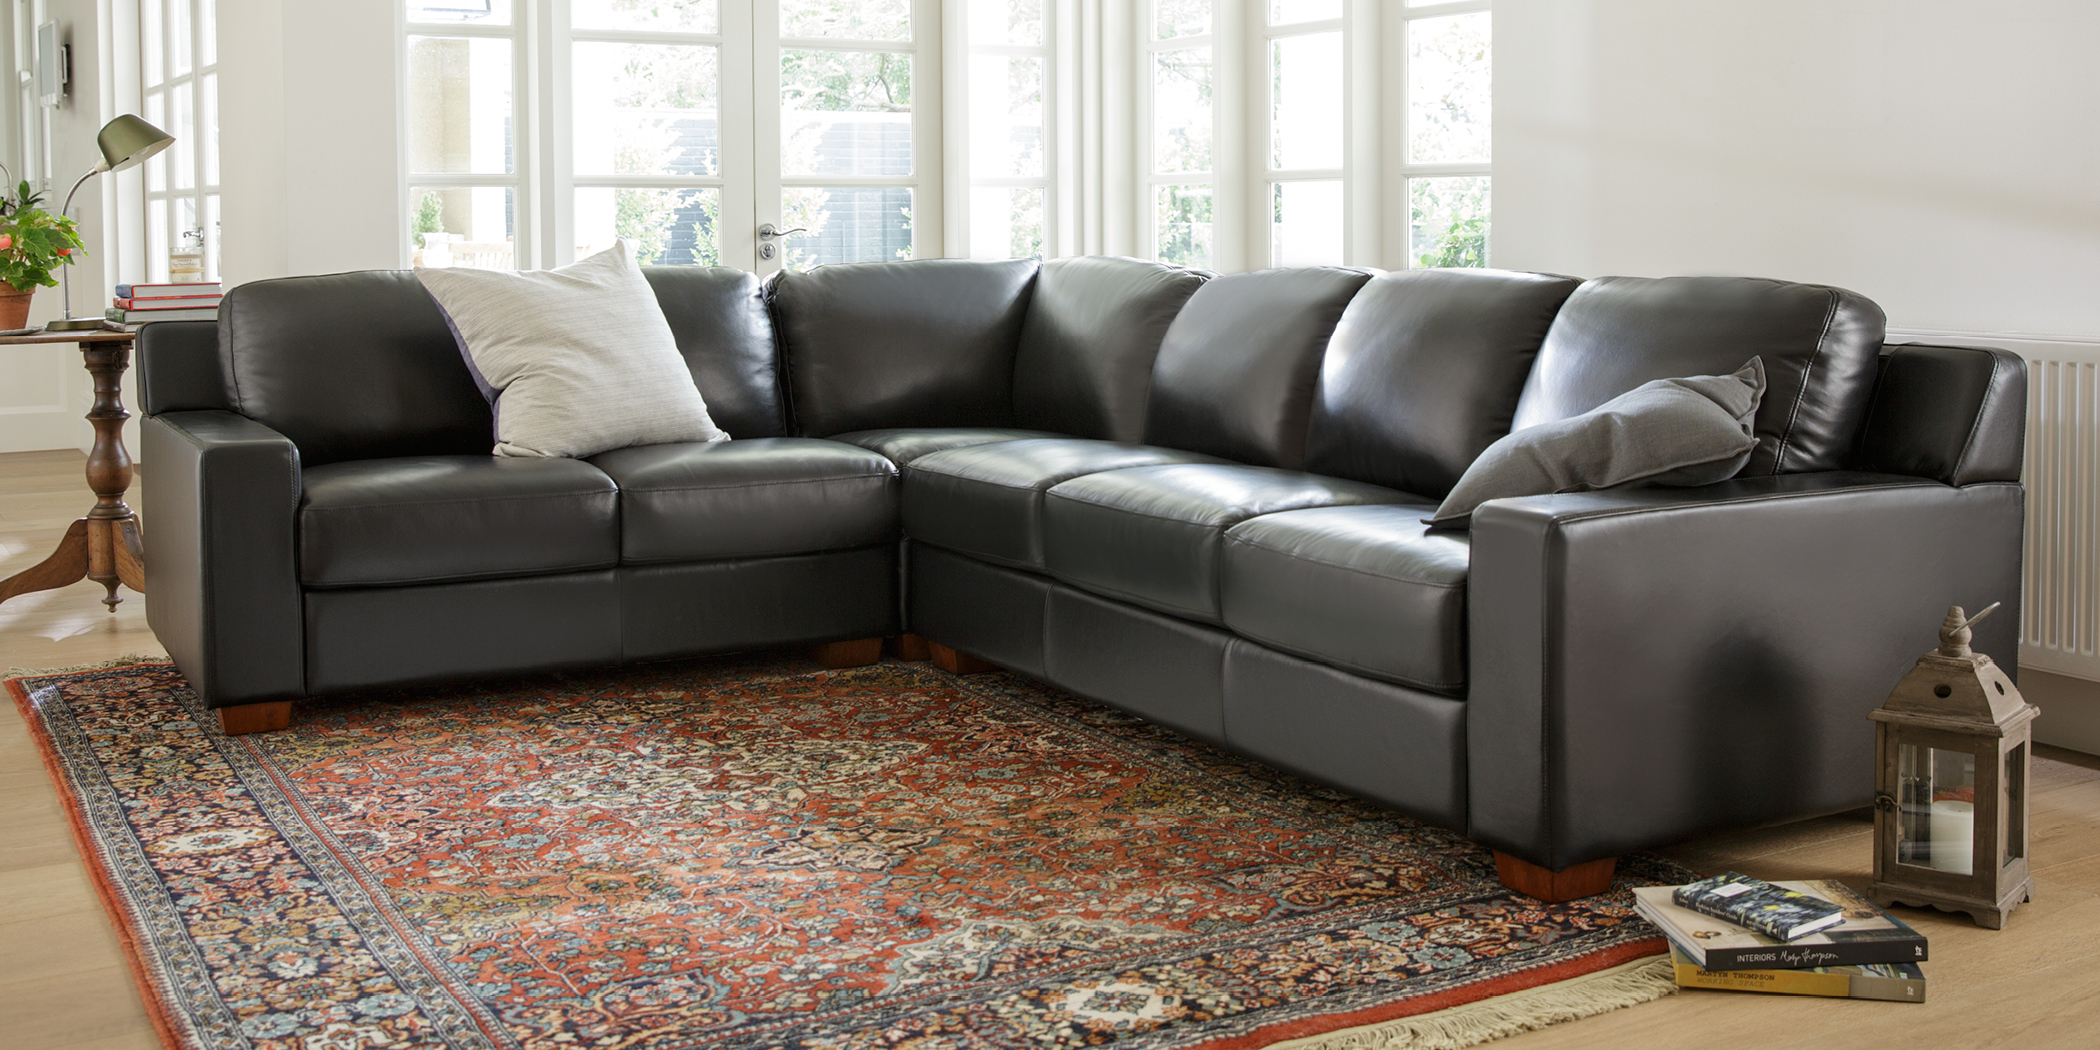 Berlin 2 Amp 3 Seater Sofas Plush Sofas Amp Furniture